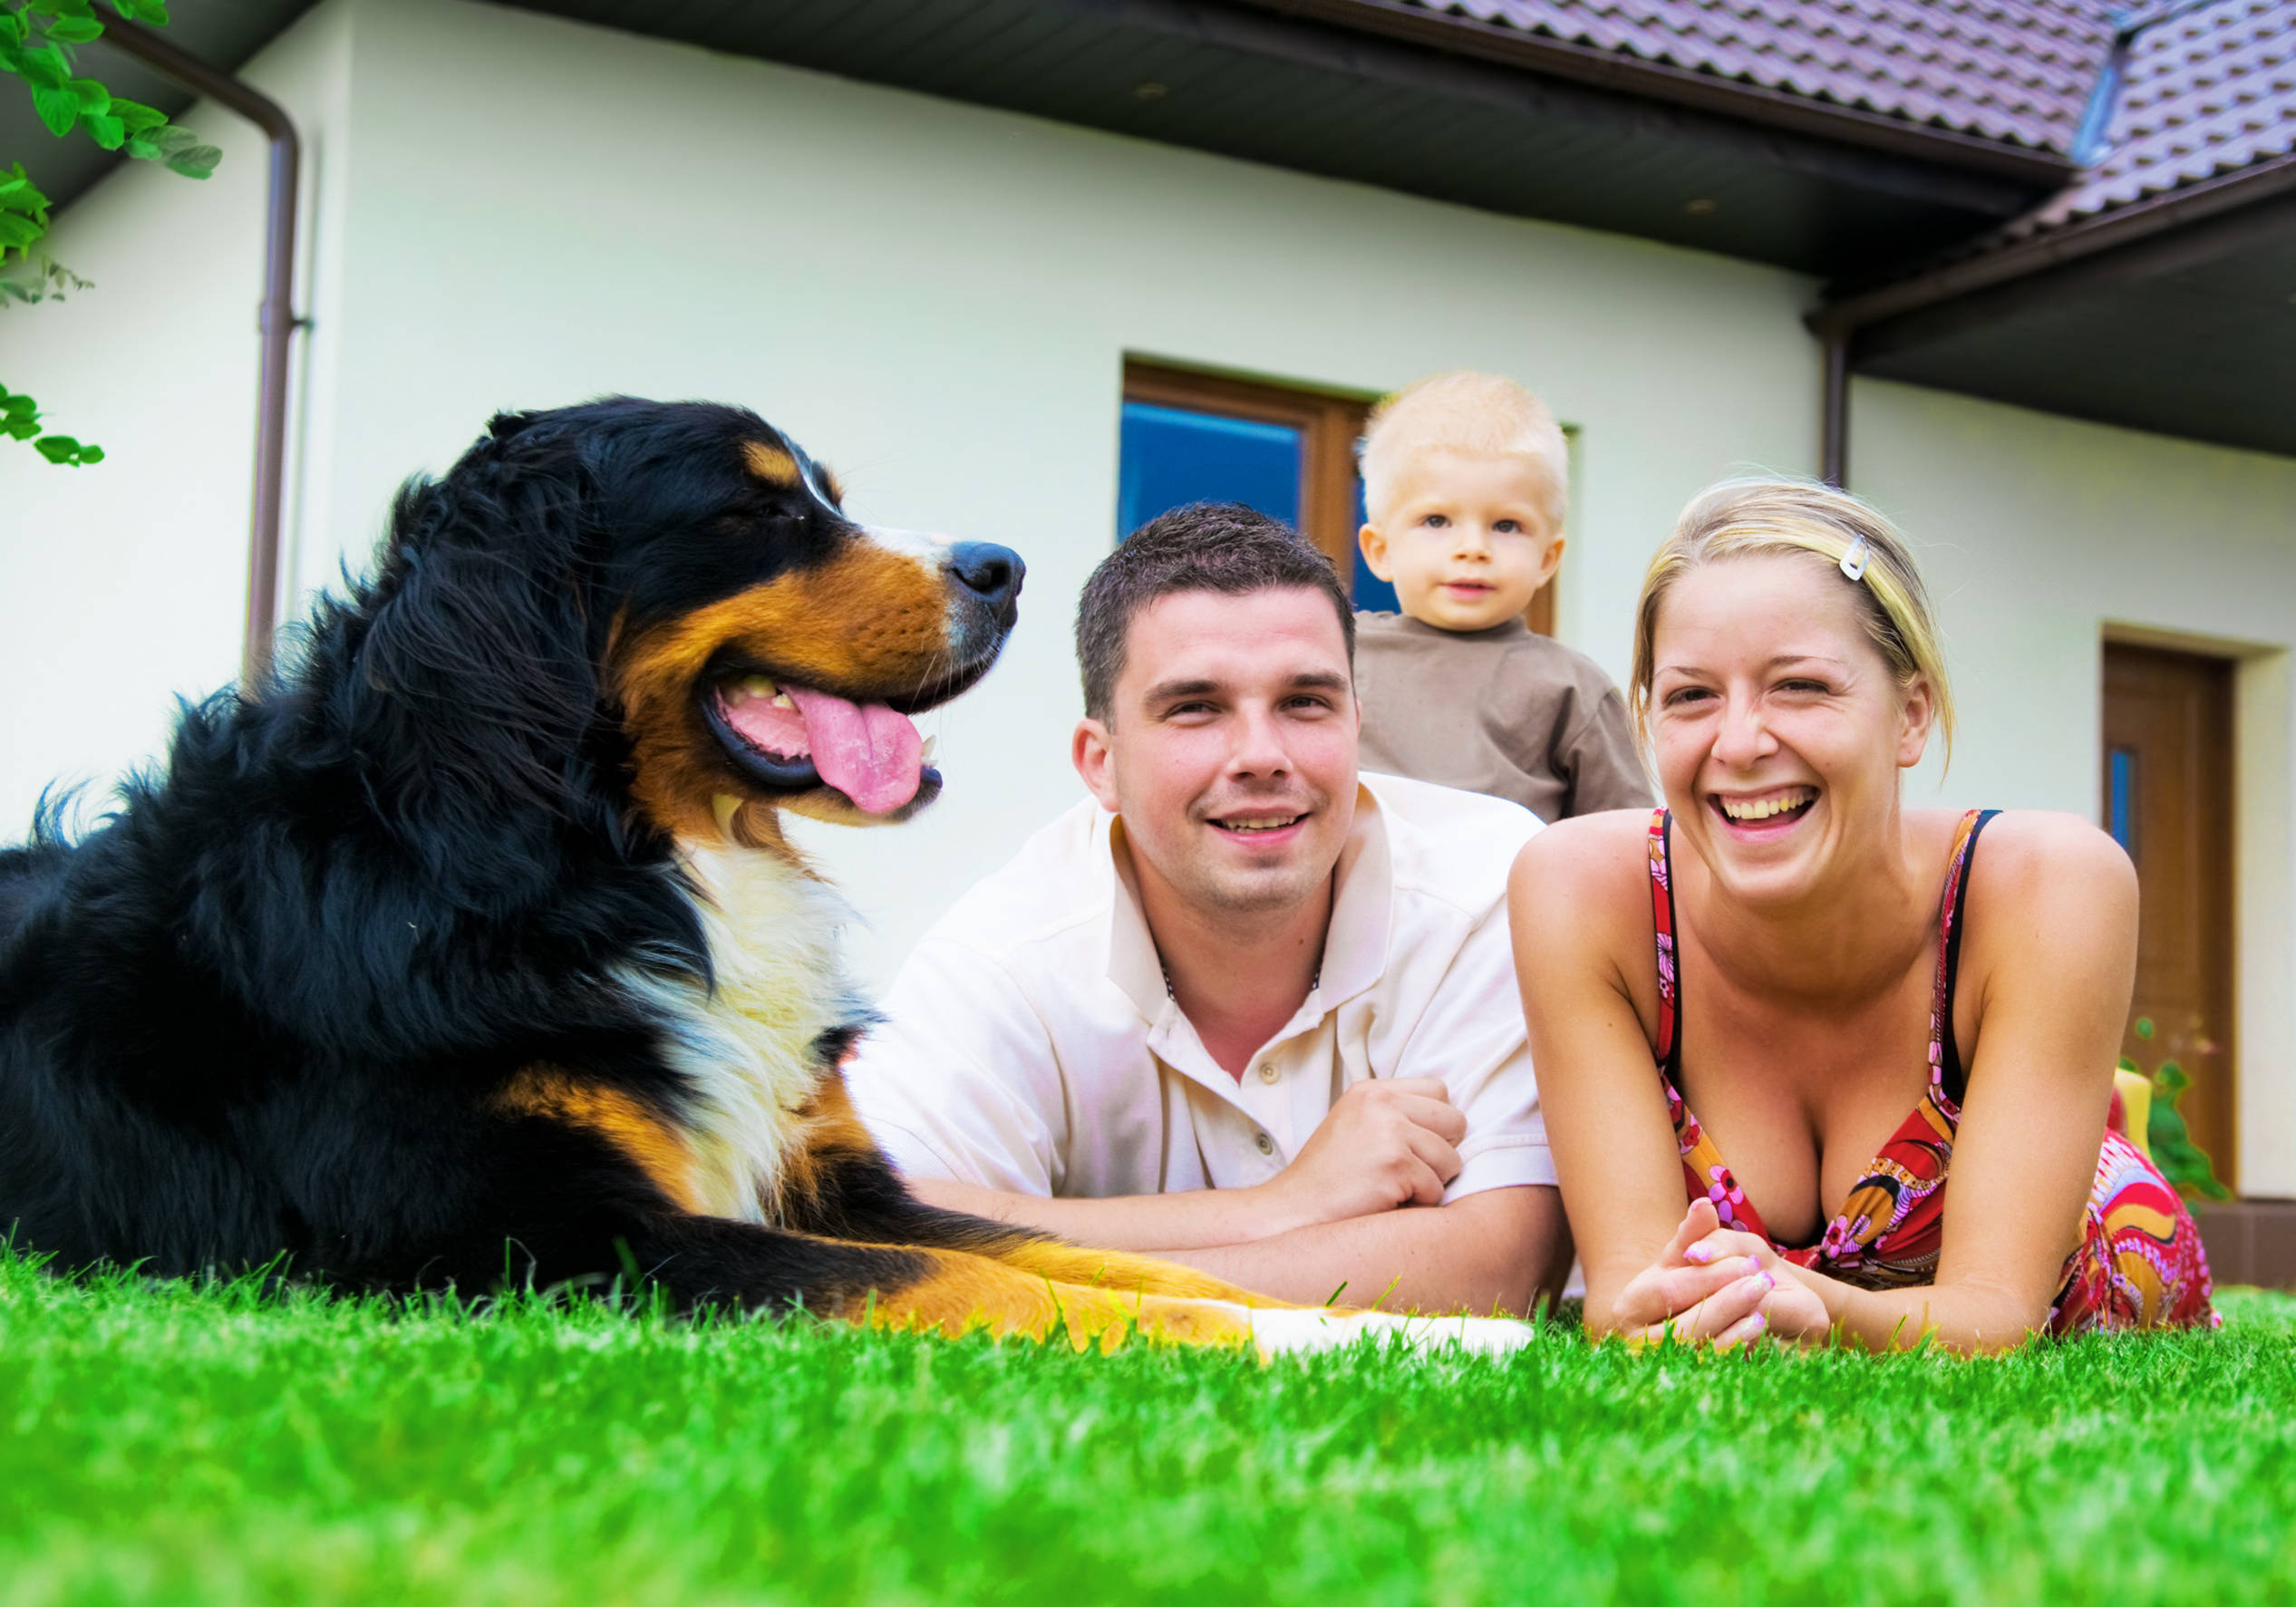 family-with-dog-1 A & A Pest Control | Manchester, CT - Get $25  OFF Seasonal Services